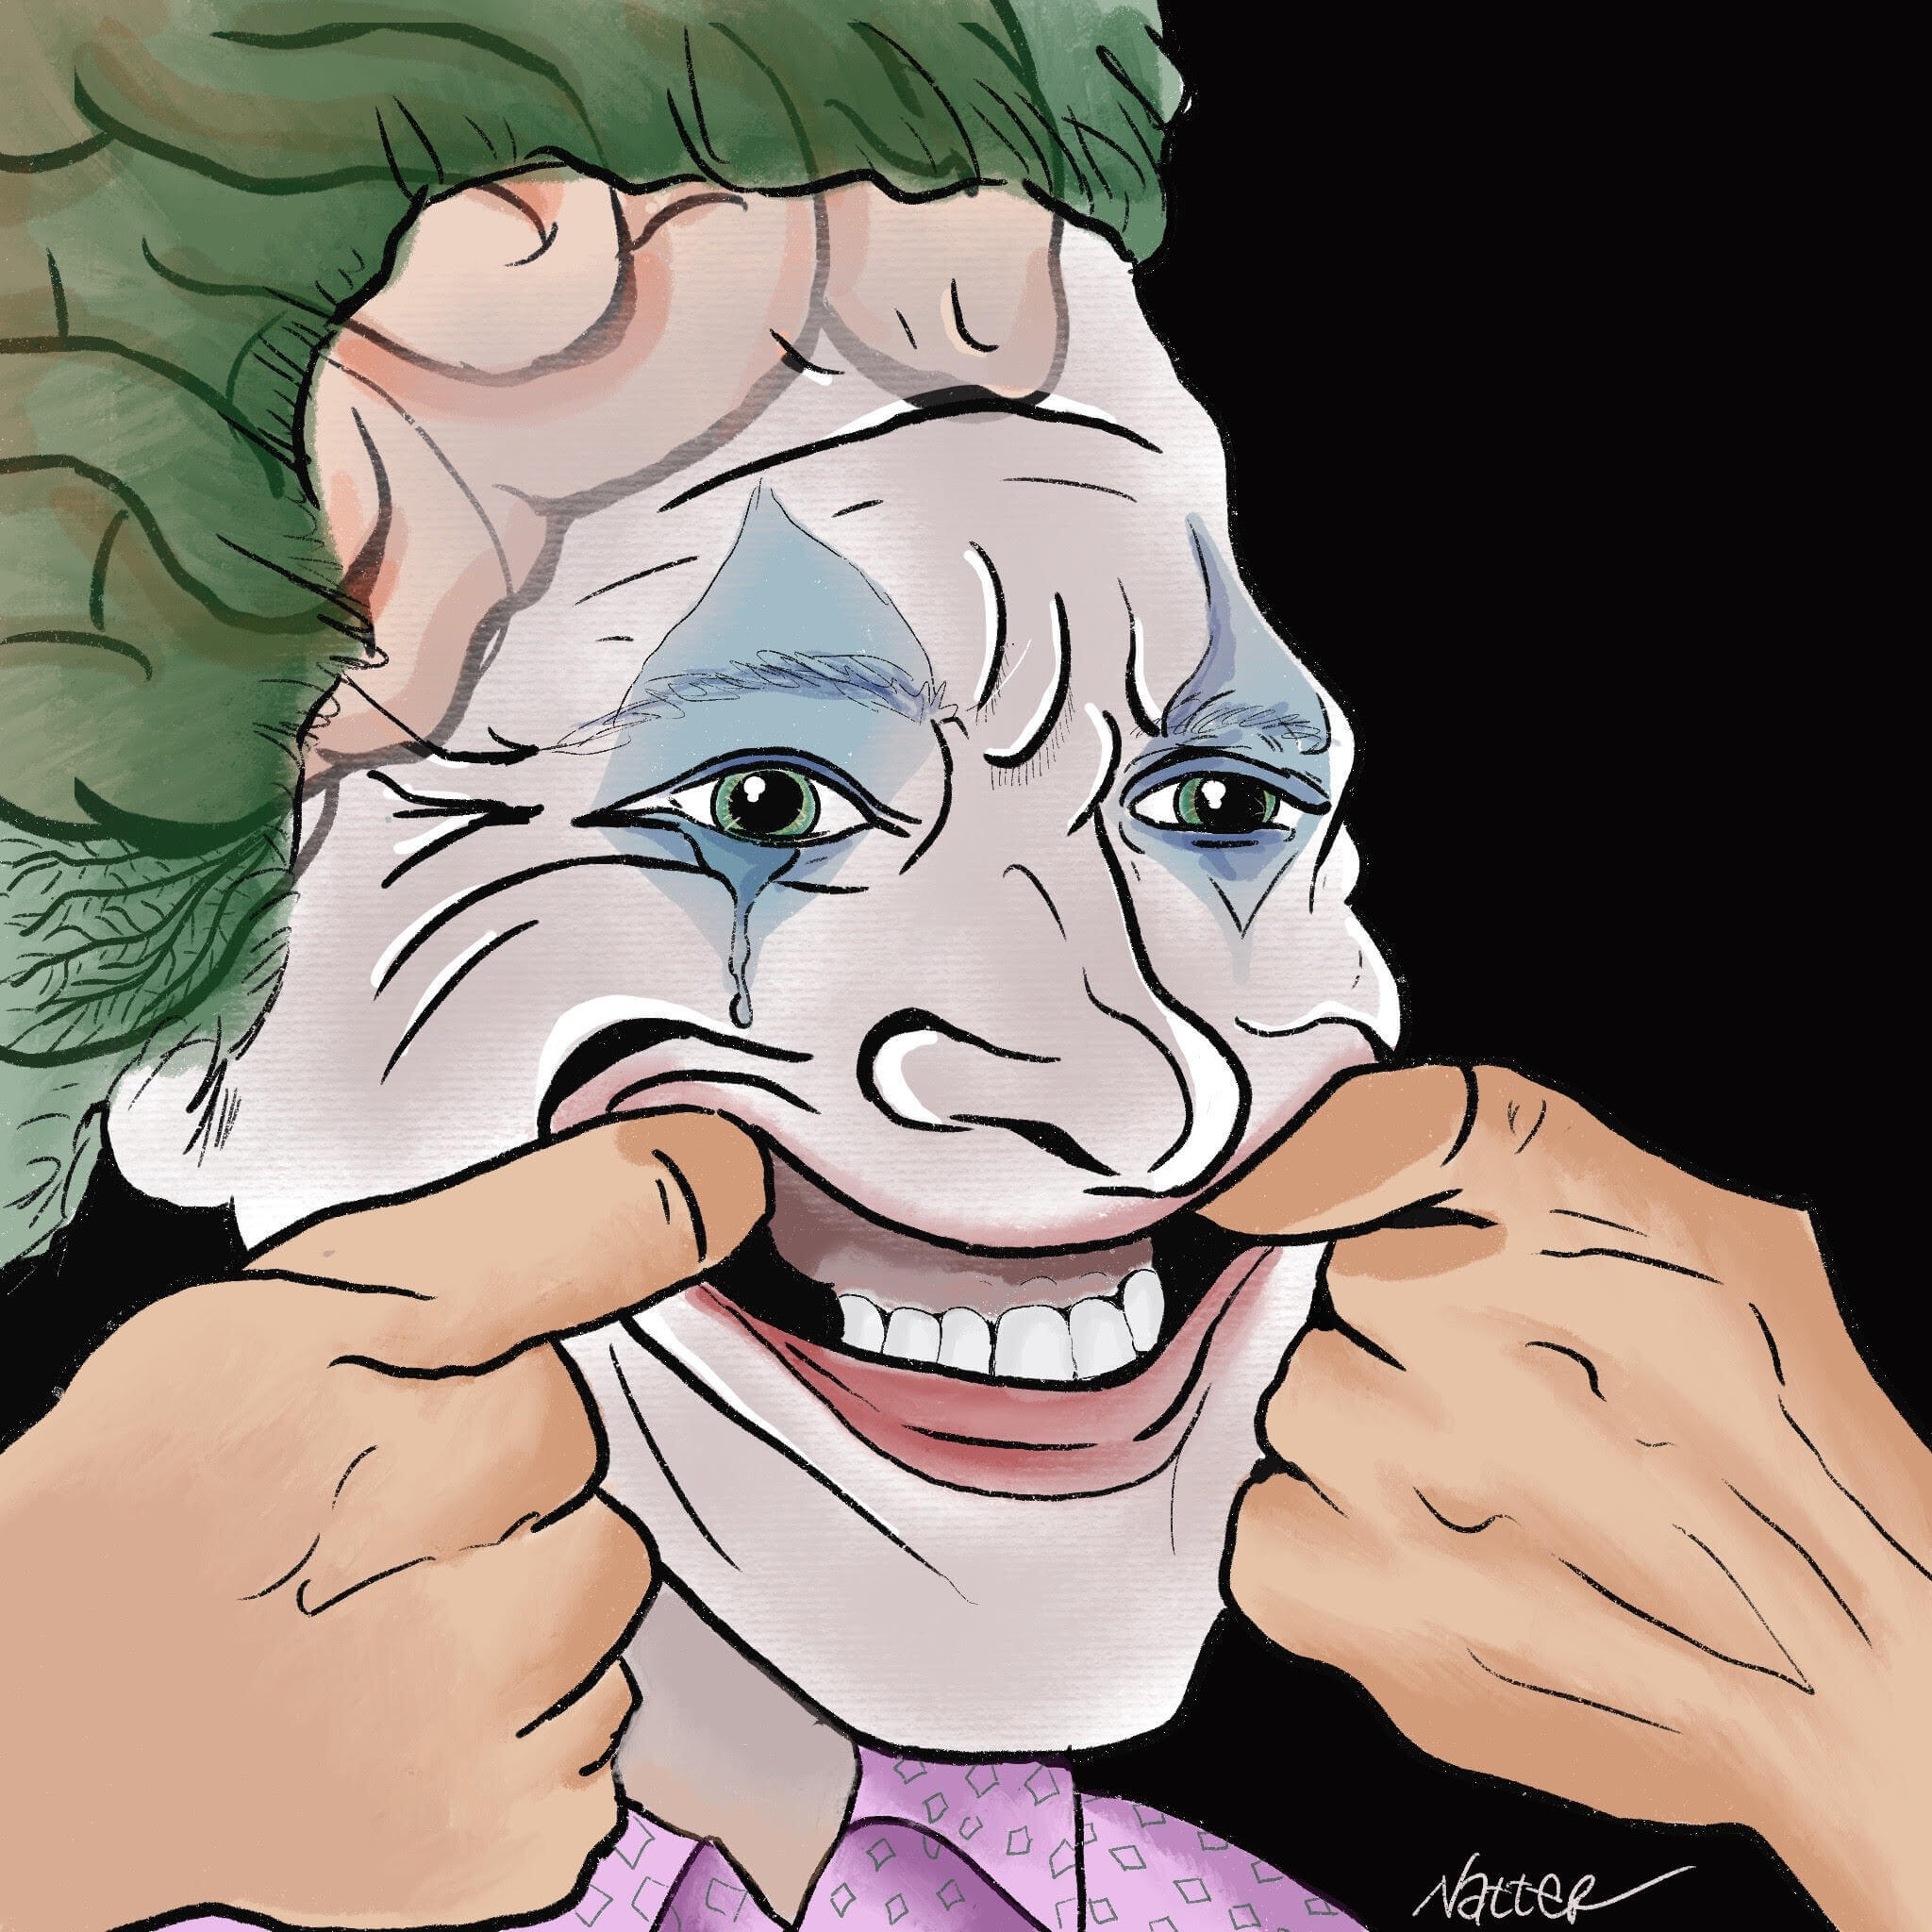 Did Pseudobulbar Affect Cause the Joker's Laughing Condition?